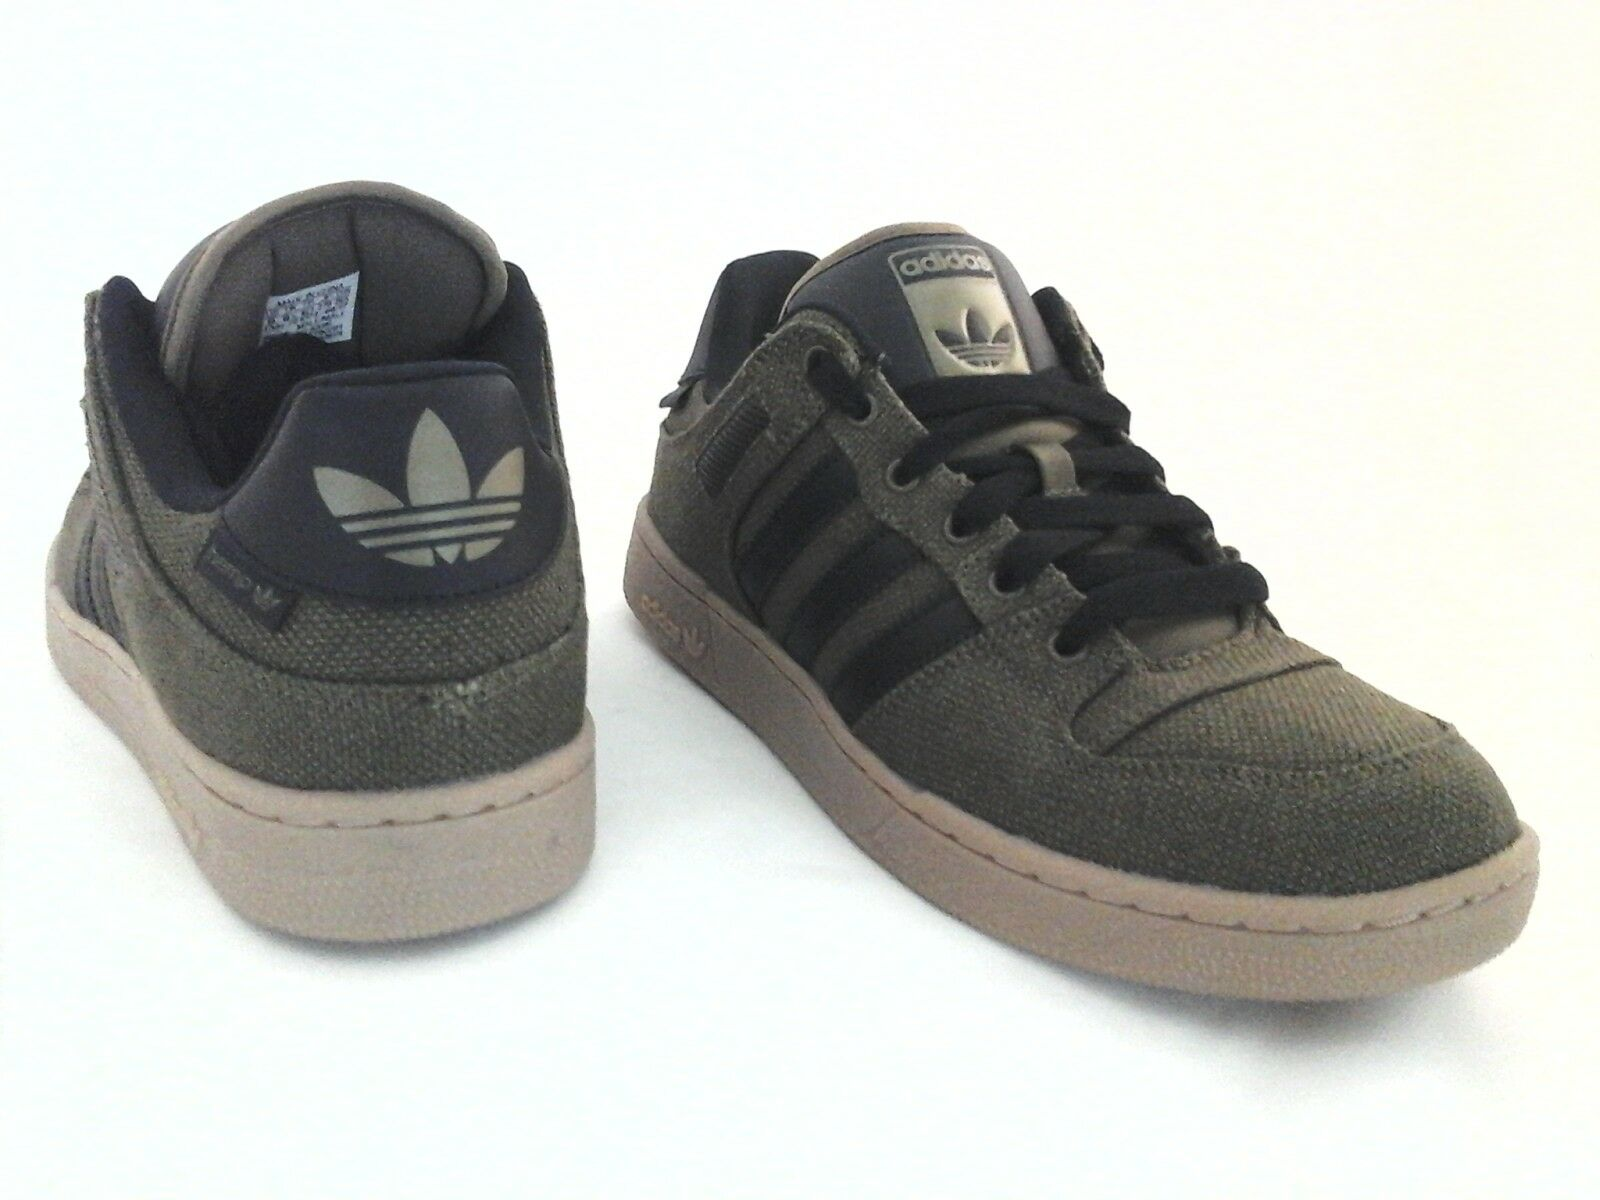 Adidas Bucktown ST HEMP Olive Green/Black w Gum Soles Sneakers Shoes AC6980